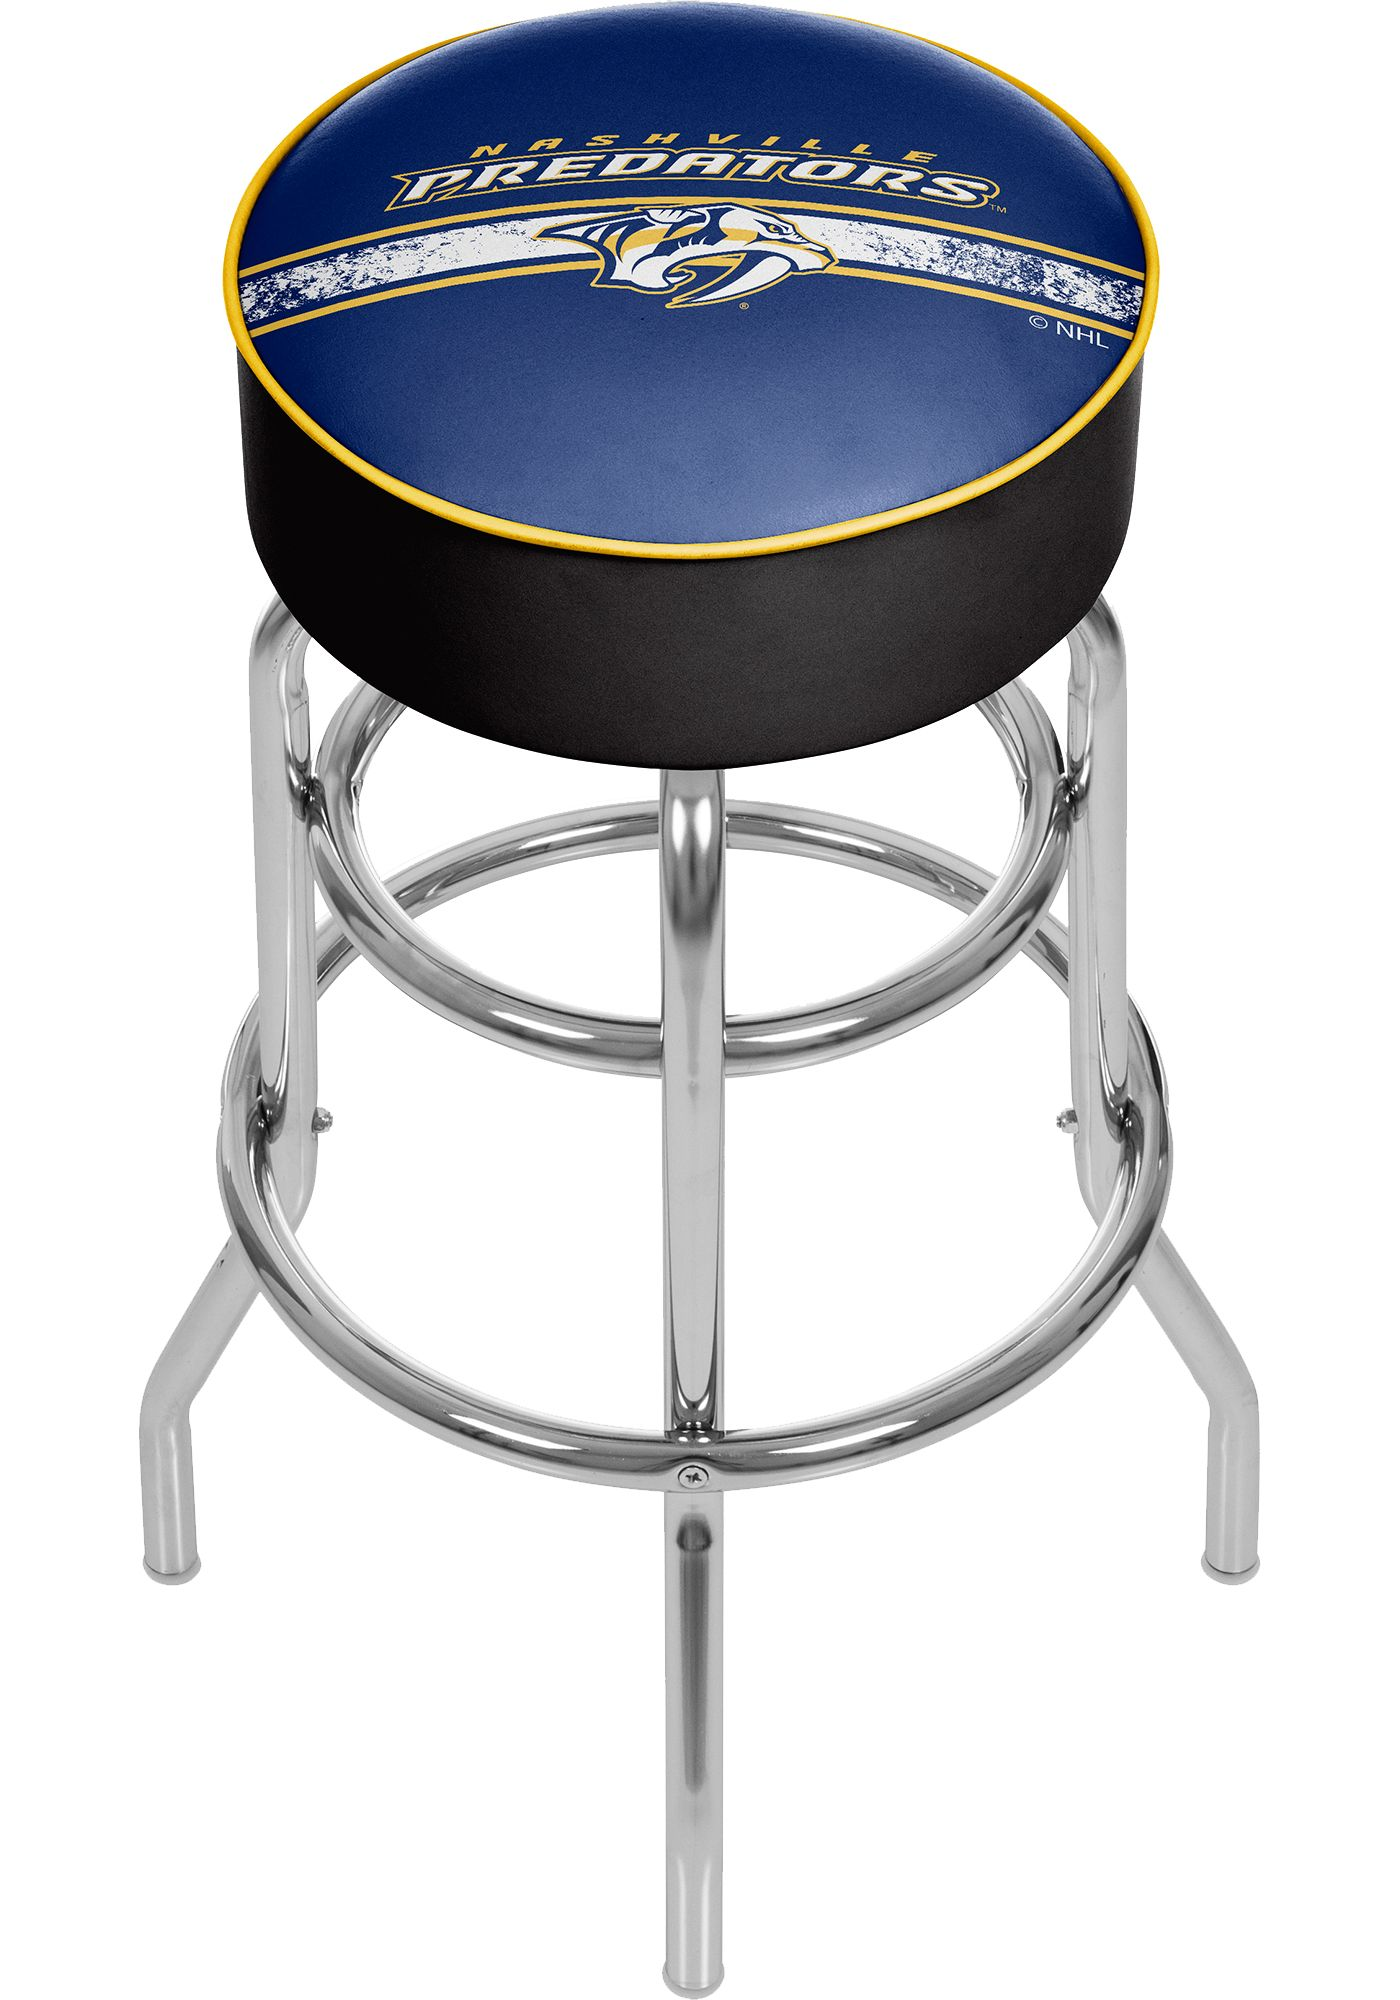 Trademark Games Nashville Predators Padded Bar Stool